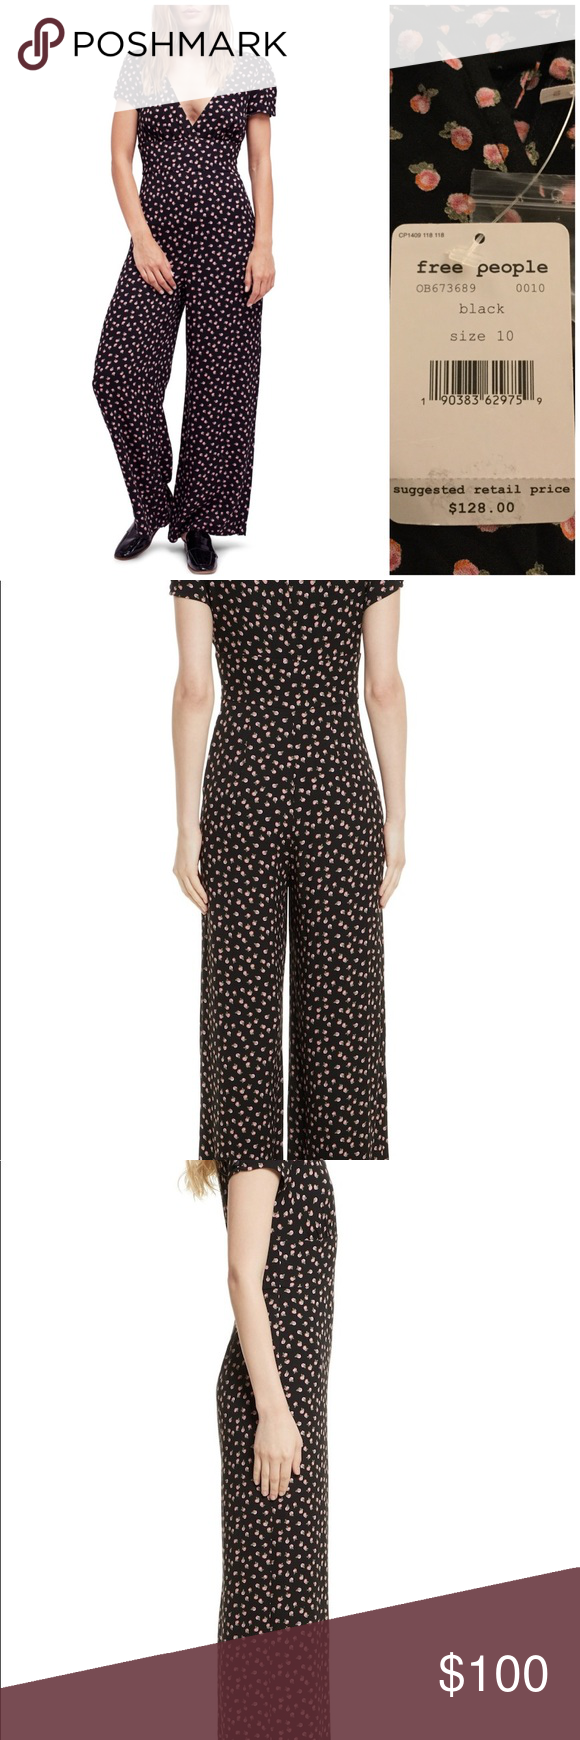 4fd0a8ff82d0 Free People Mia short sleeve jumpsuit Perfectly suited for weekend  adventures